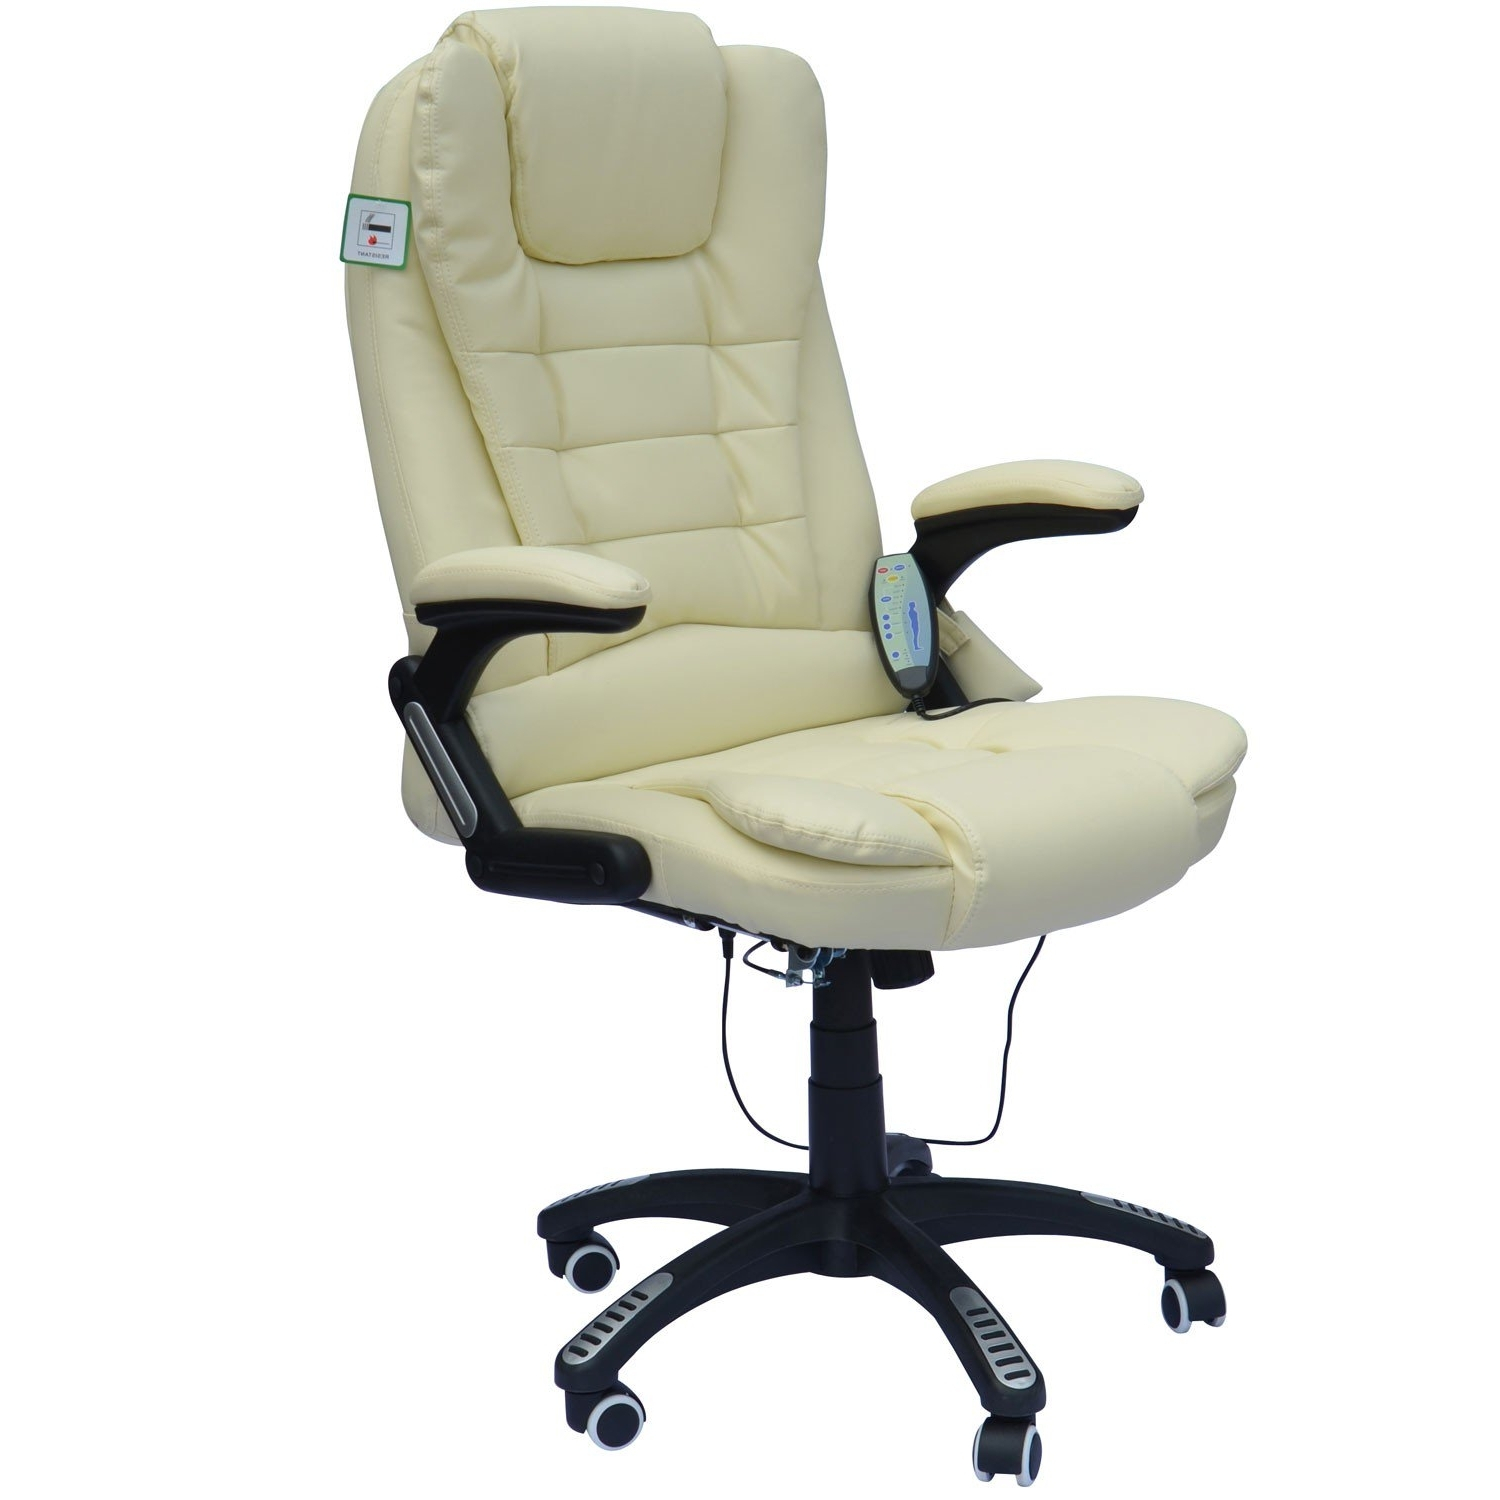 Executive Office Chairs With Massage/heat Pertaining To Most Up To Date Homcom Massage Chair Office Computer Executive Ergonomic Heated (View 10 of 20)